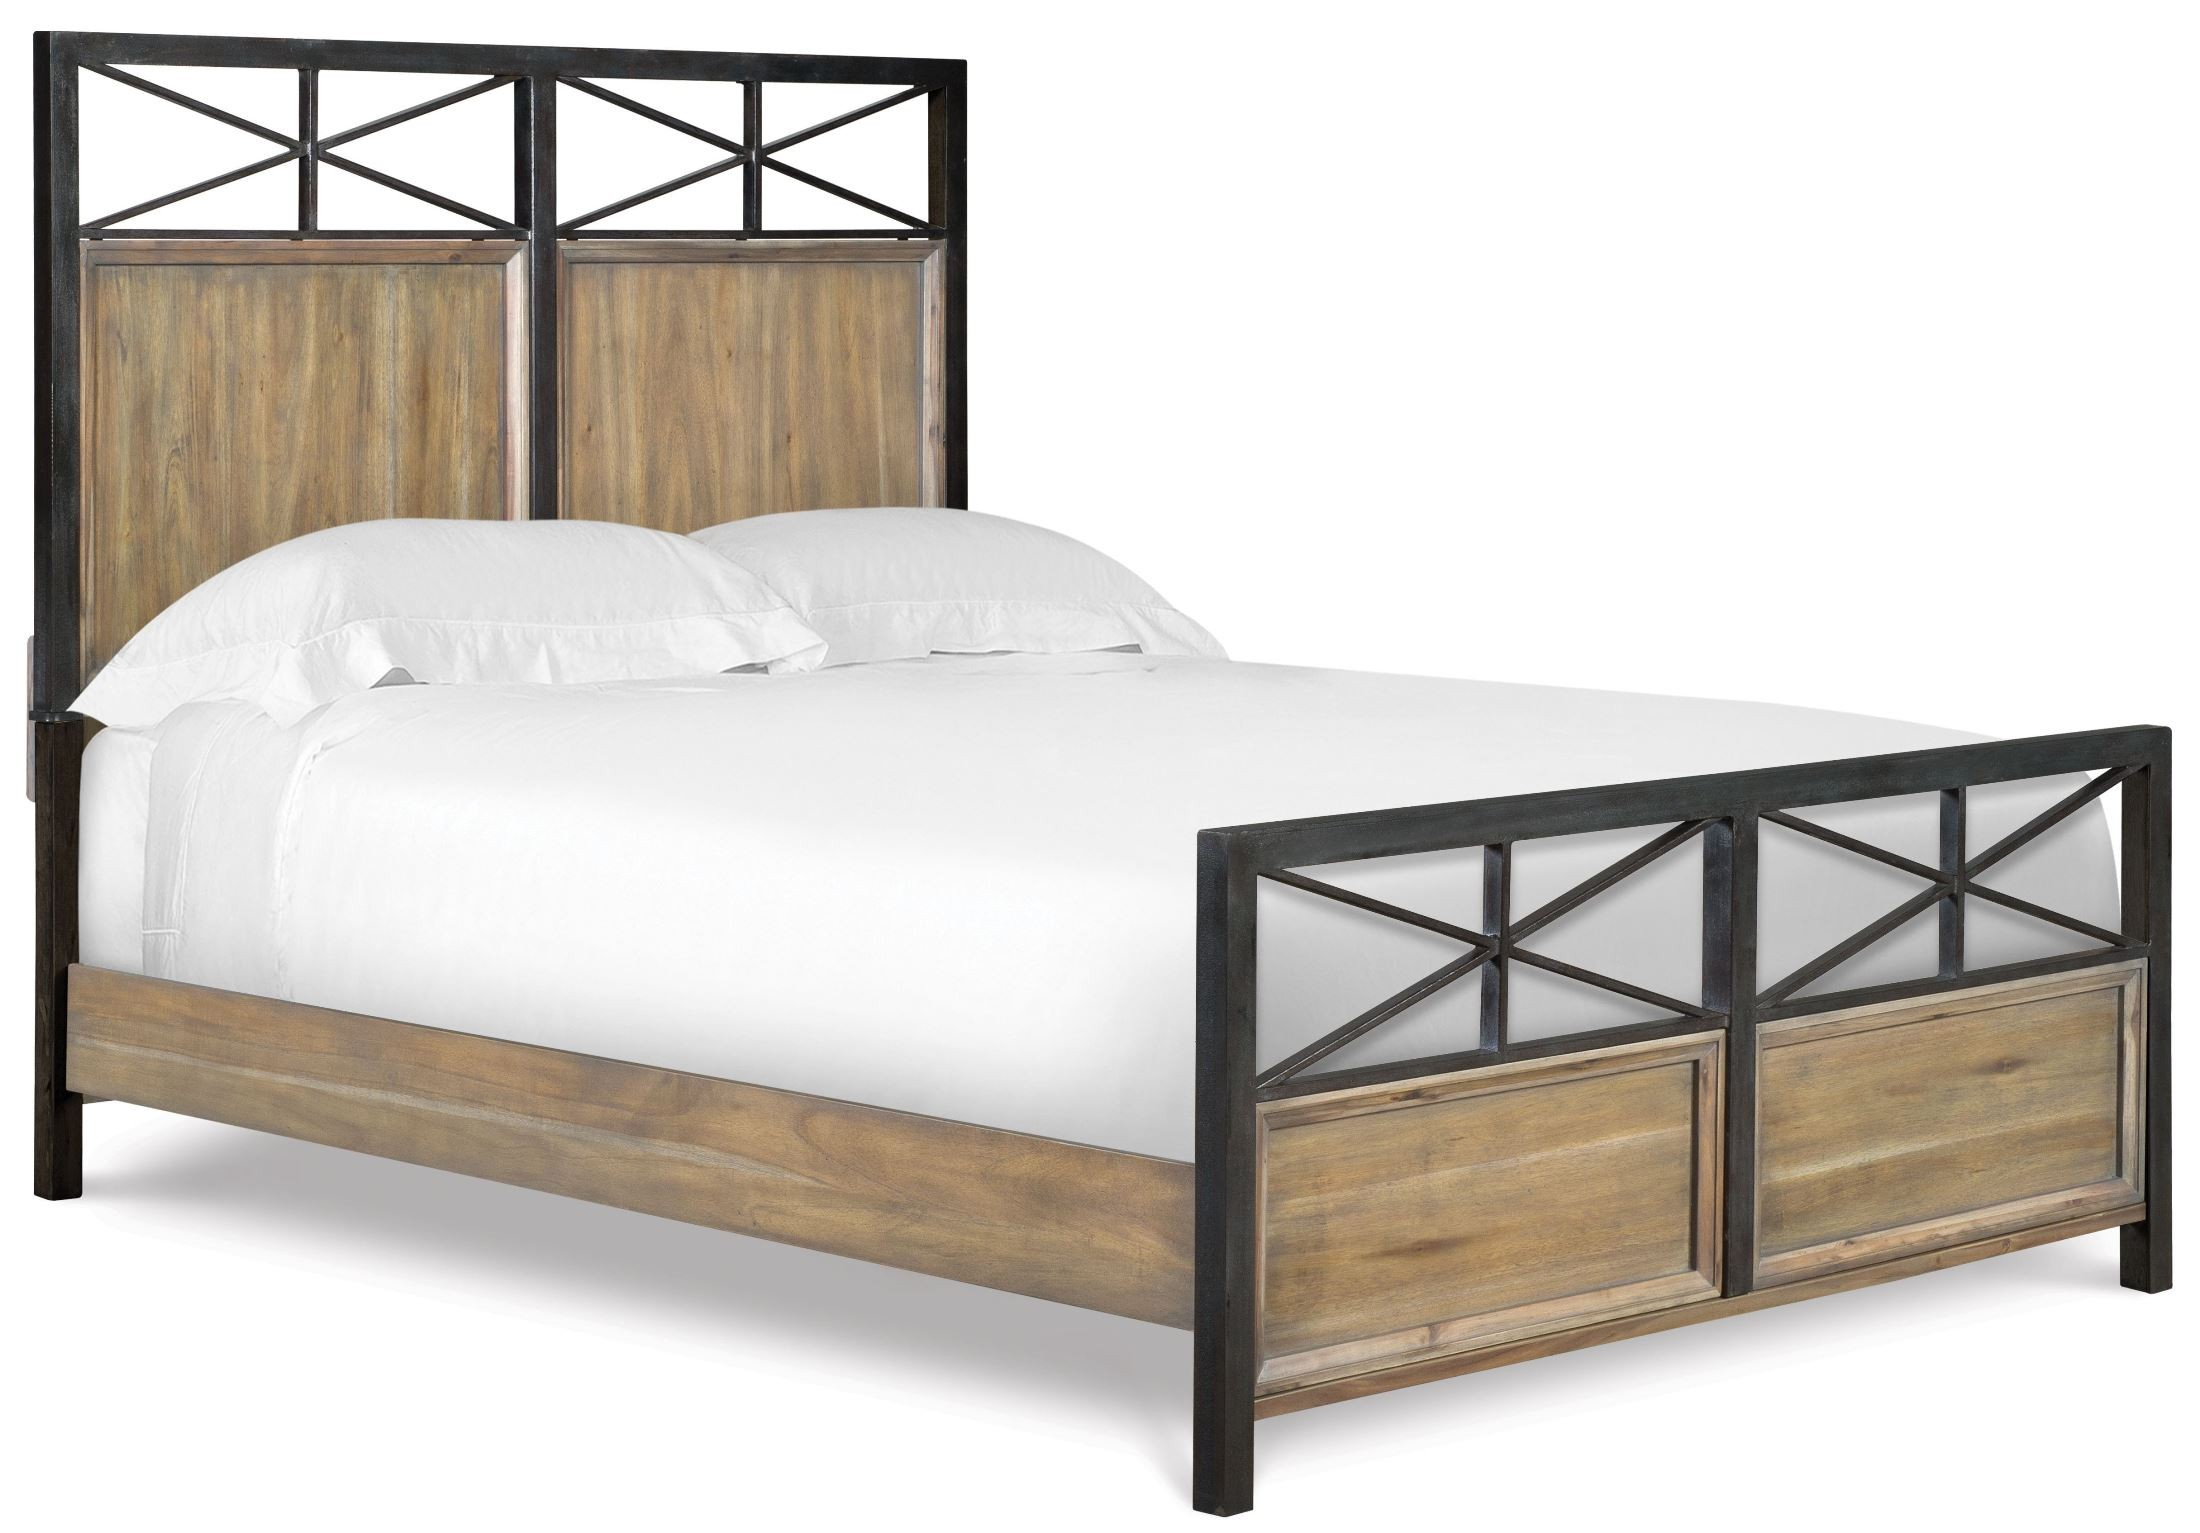 Very Impressive portraiture of  Metal/Wood Panel Bedroom Set Y2159 58H 58F 58R Magnussen Furniture with #81694A color and 2200x1533 pixels